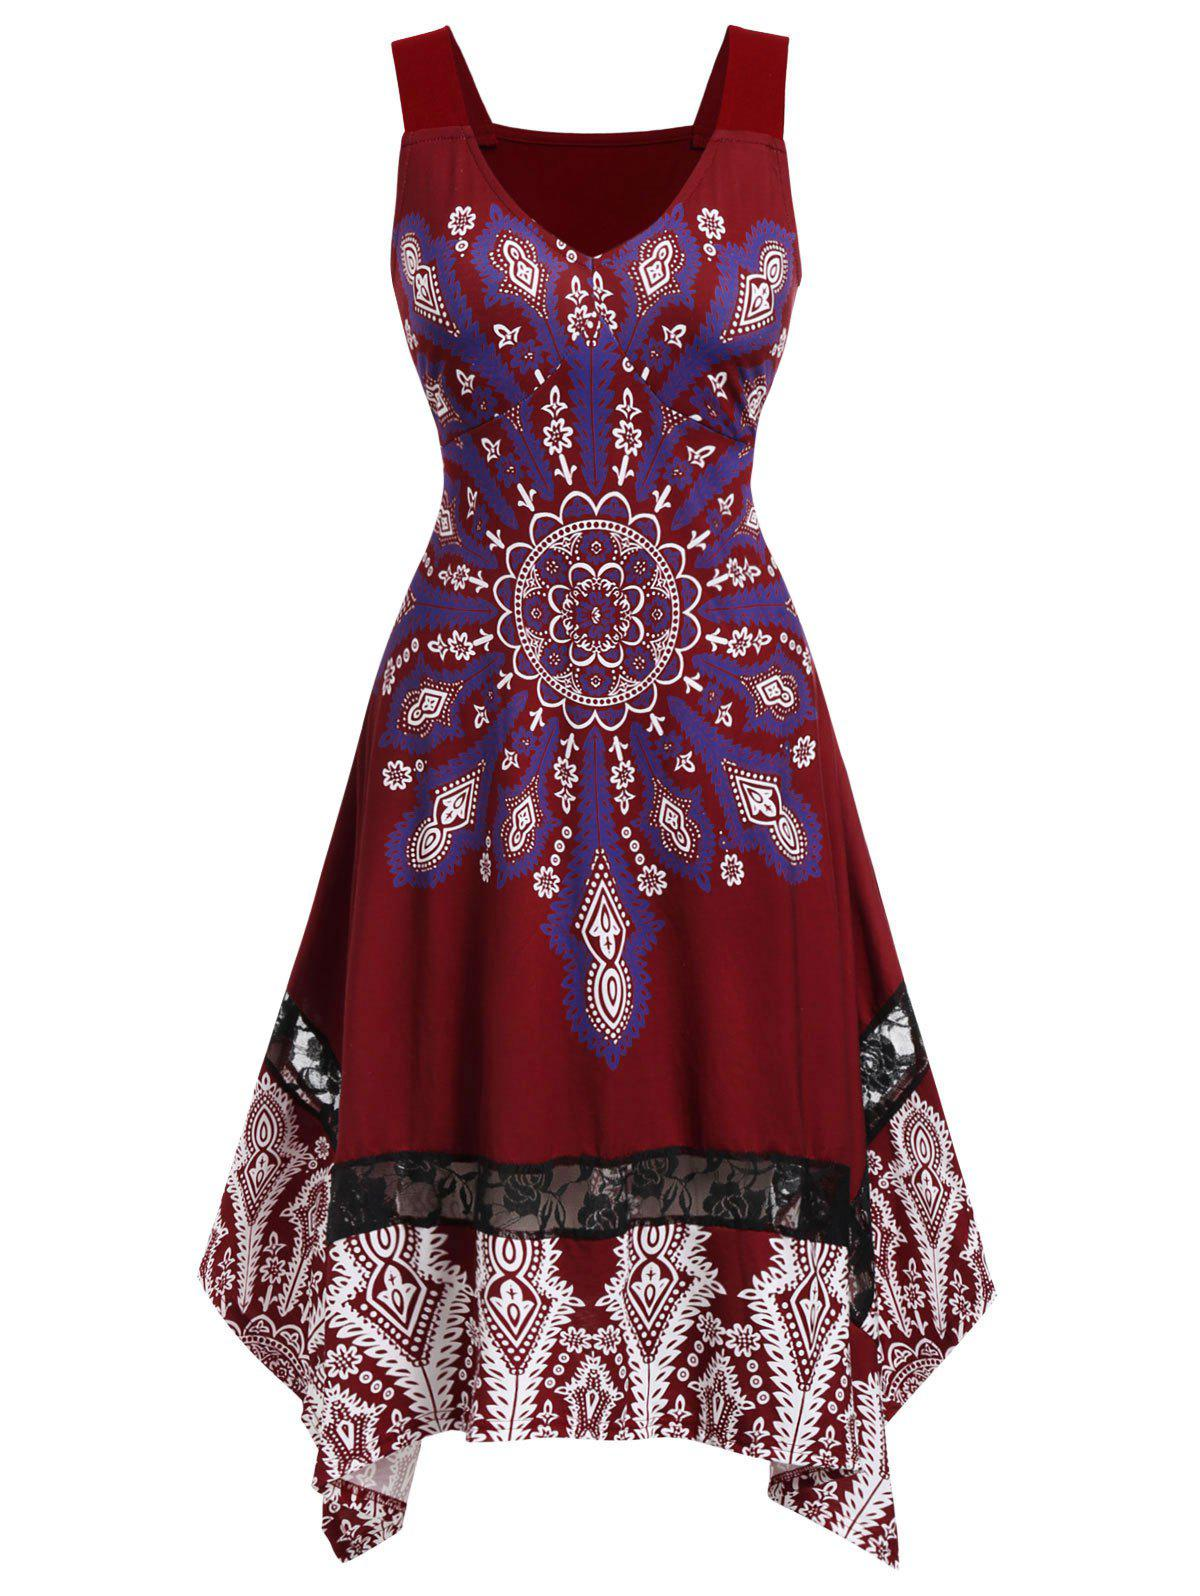 Plus Size Knee Length Printed Dress - RED WINE L